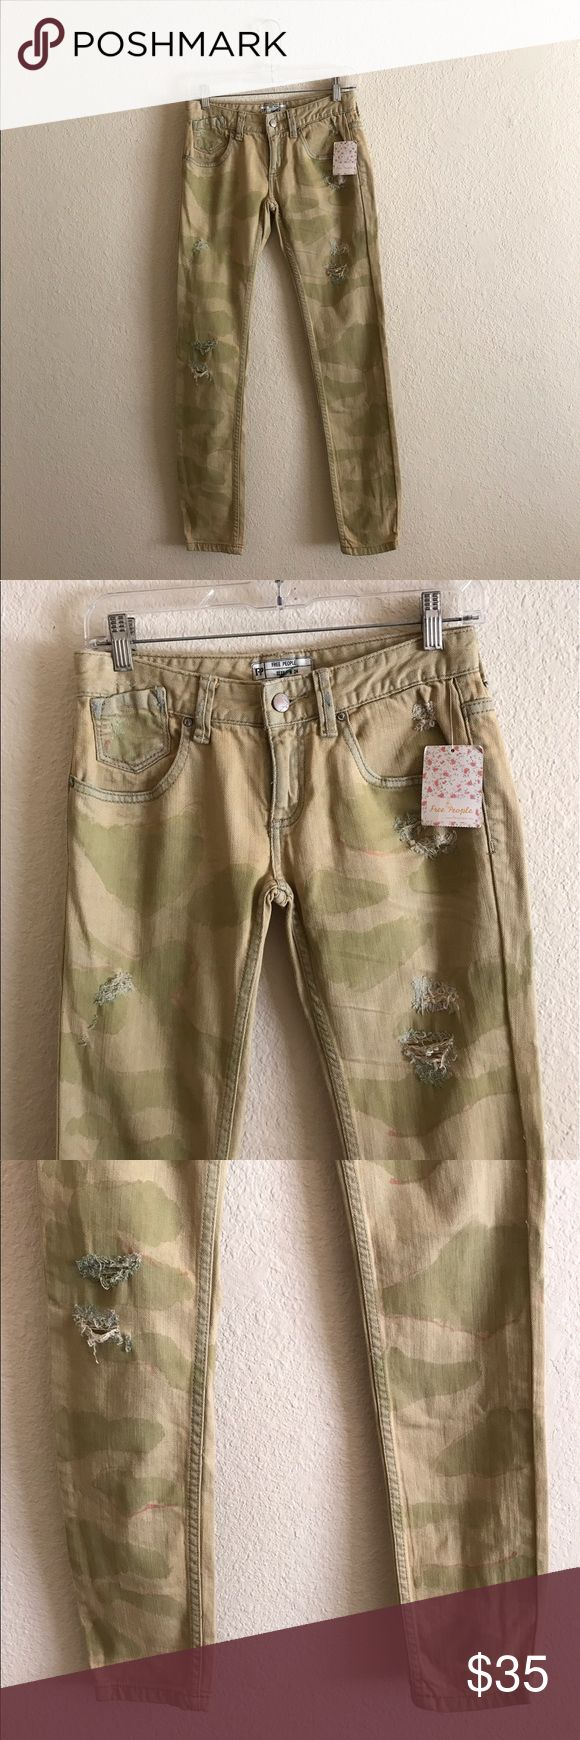 """NWT FREE PEOPLE women's Camo Skinny Jeans 24 New with Tags Free People women's Castro Camo Skinny Jeans.  Size: 24.  Inseam: 30"""". If you have any questions feel free to ask! Free People Jeans Skinny"""